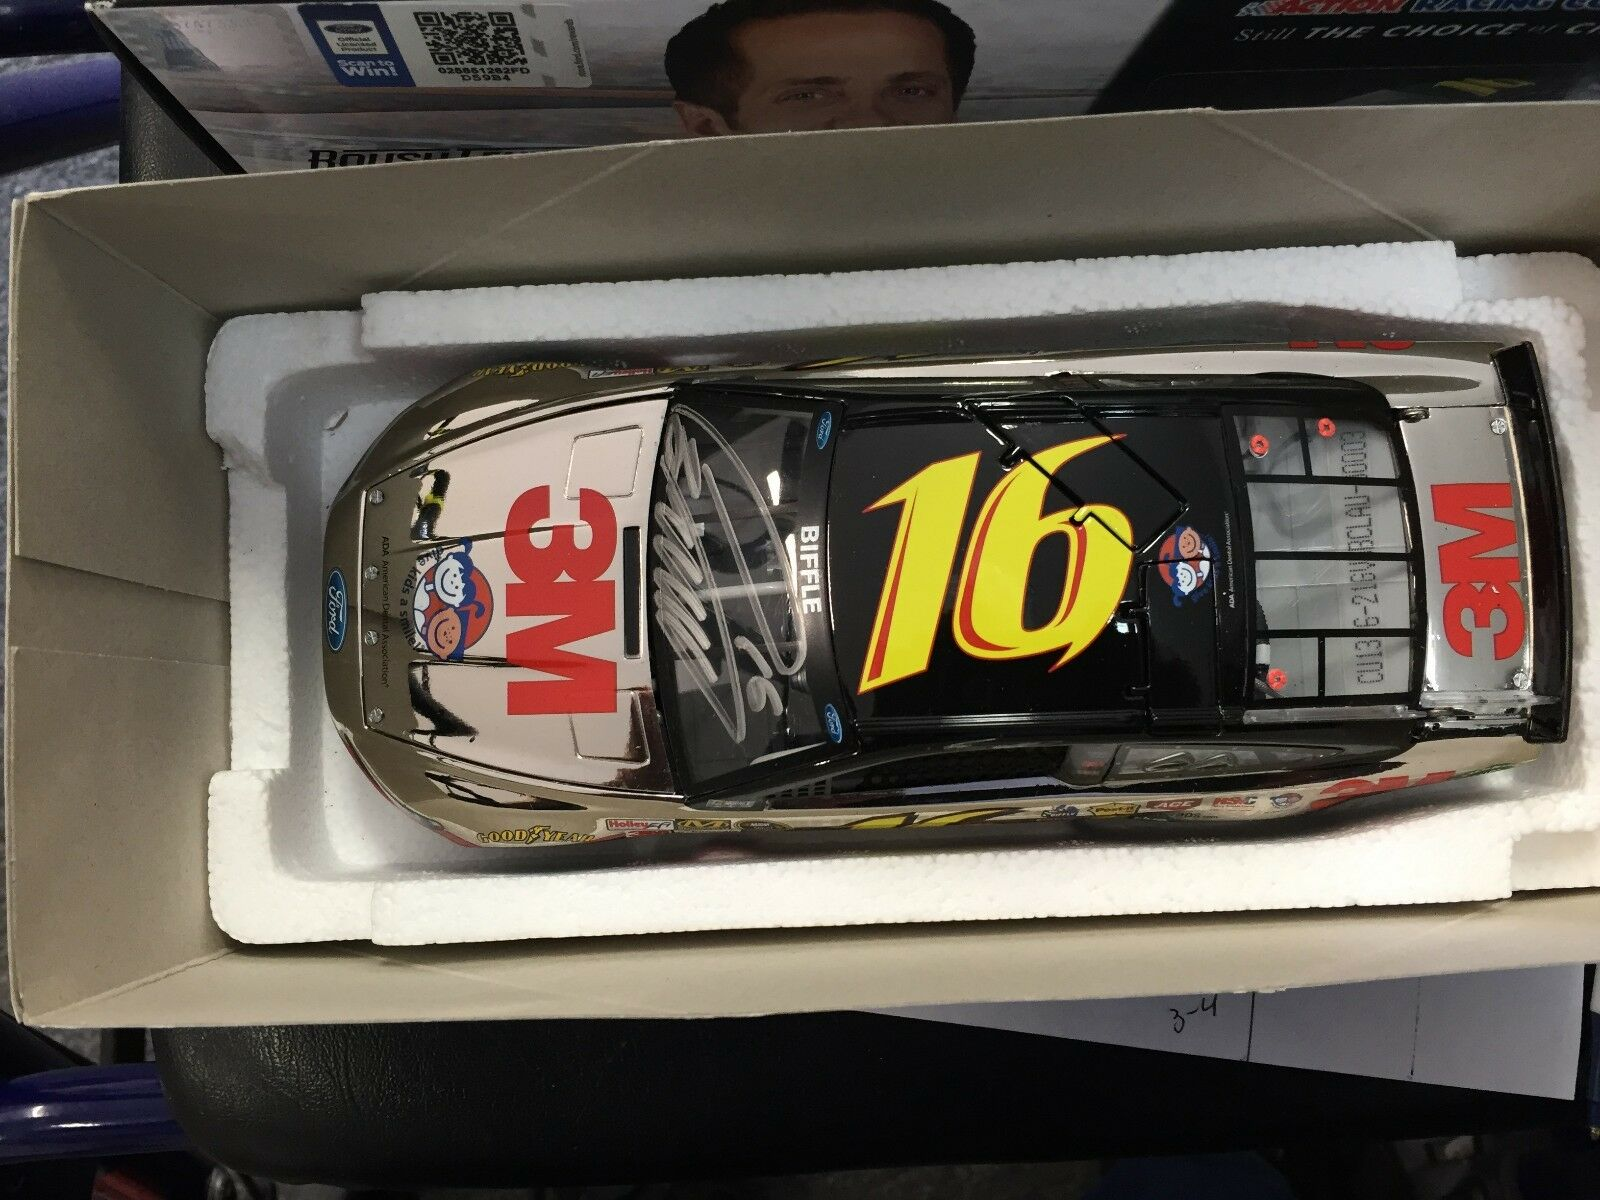 1 24 ACTION Greg Biffle '13 Fusion Give Kids A Smile 1 of 24 Autographed